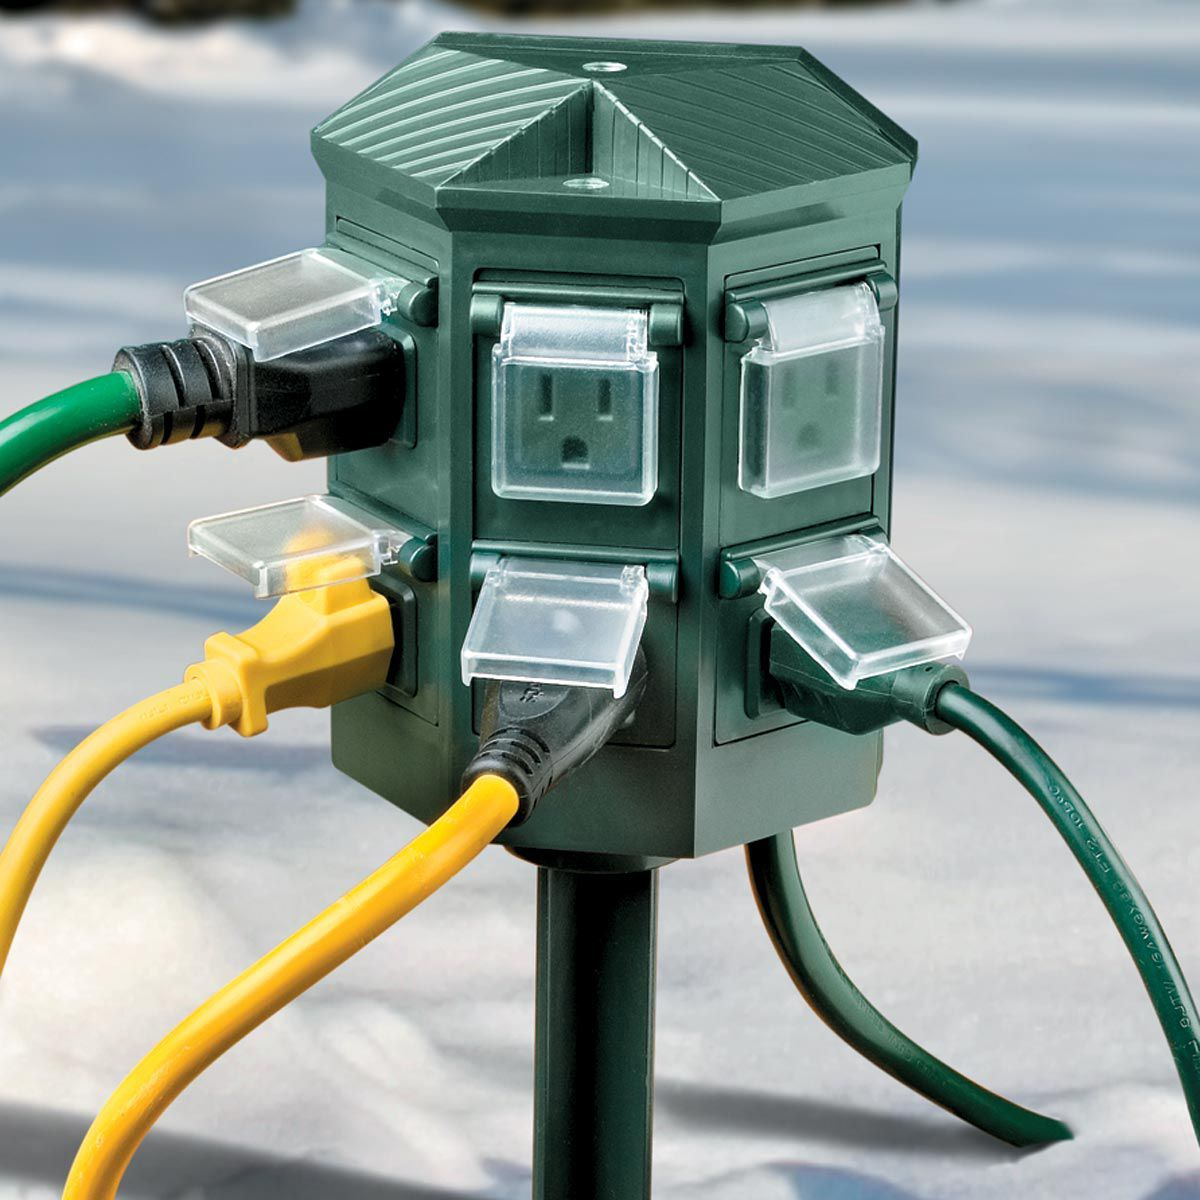 Outside Lights That Don T Need Electricity: Weatherproof Outdoor Timer Power Strip